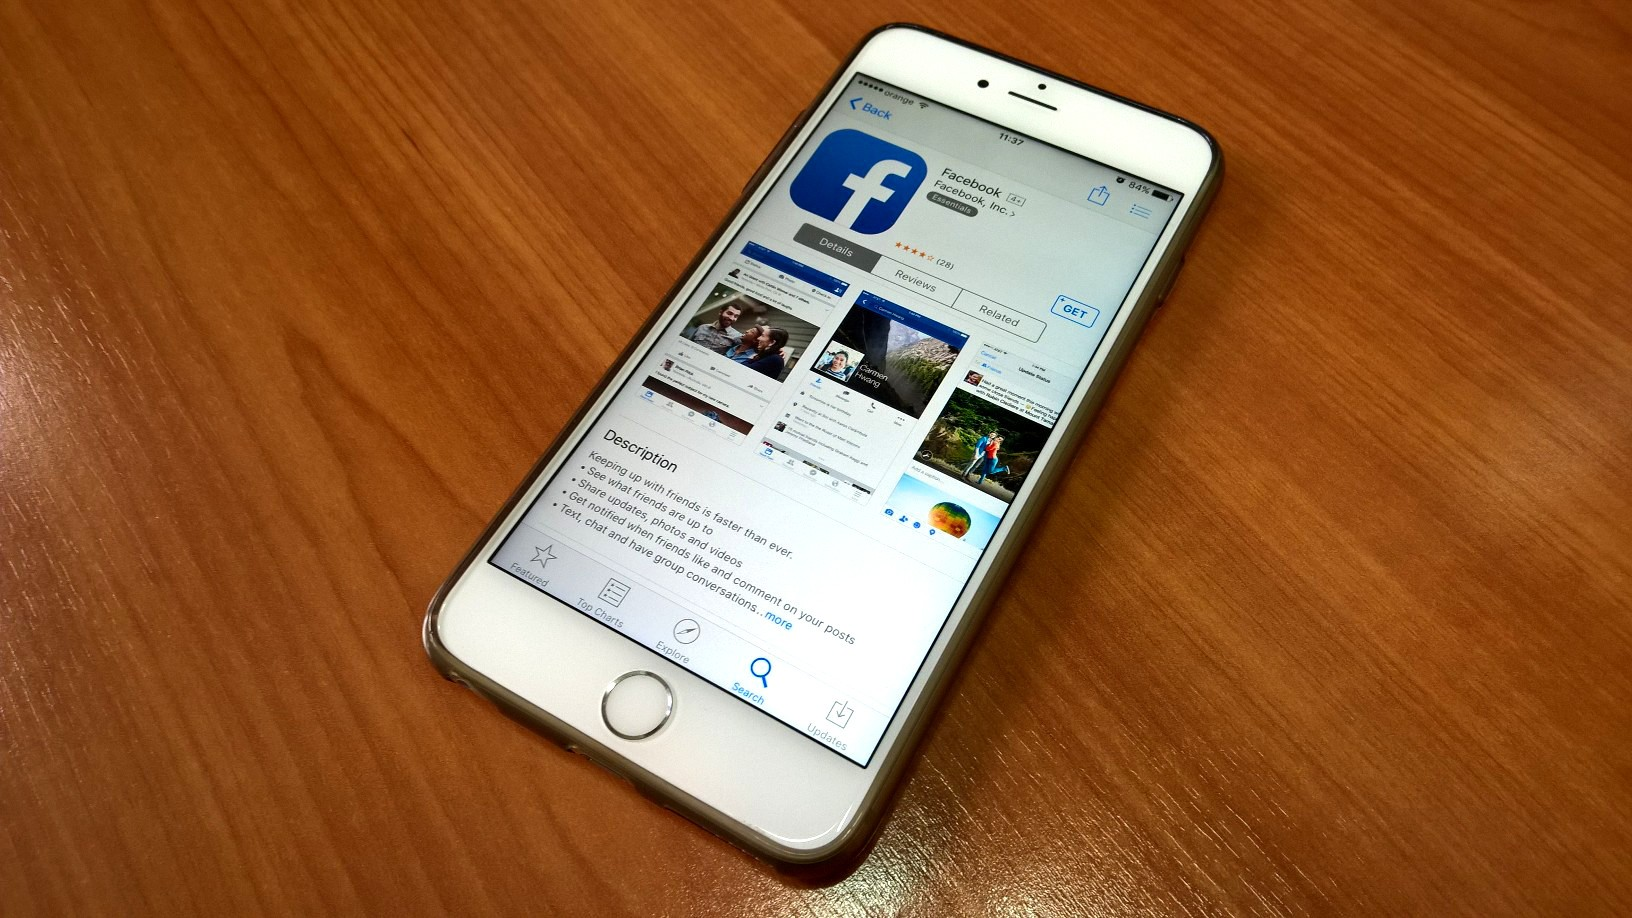 Facebook Killing Battery Life on iPhone Due to Background